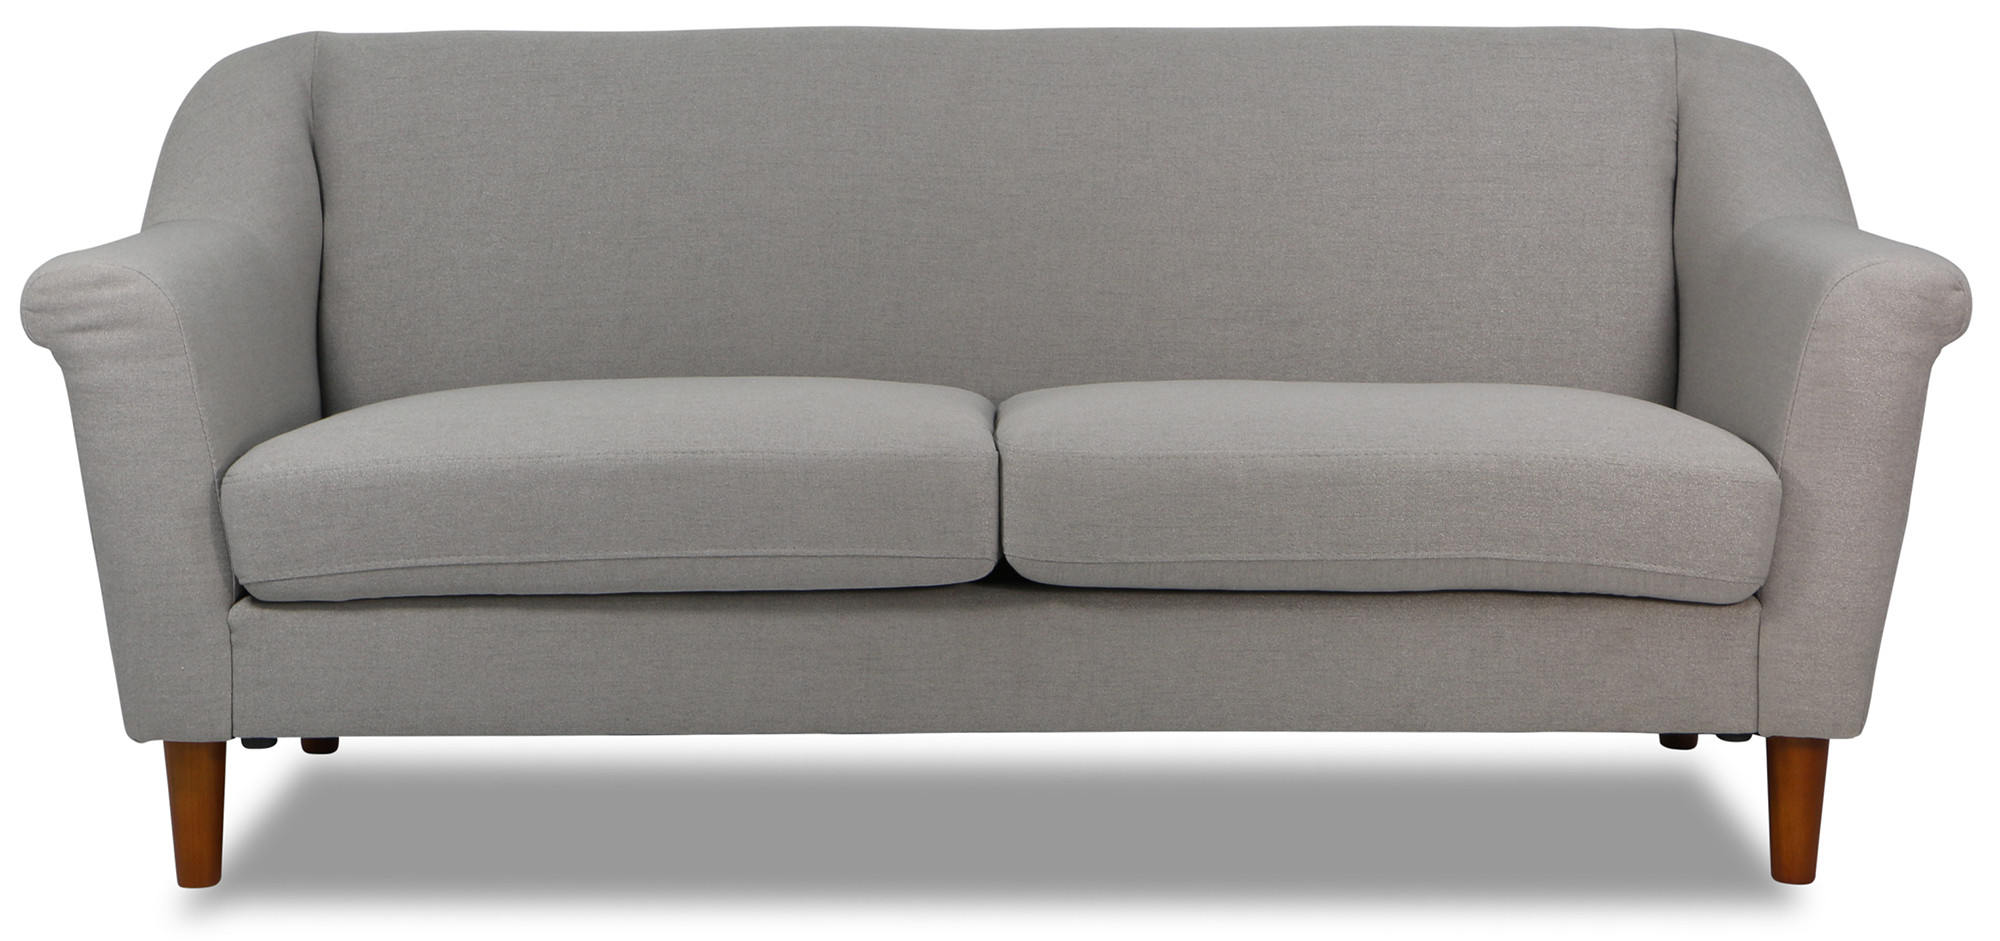 Ln Fabric 3 Seater Sofa